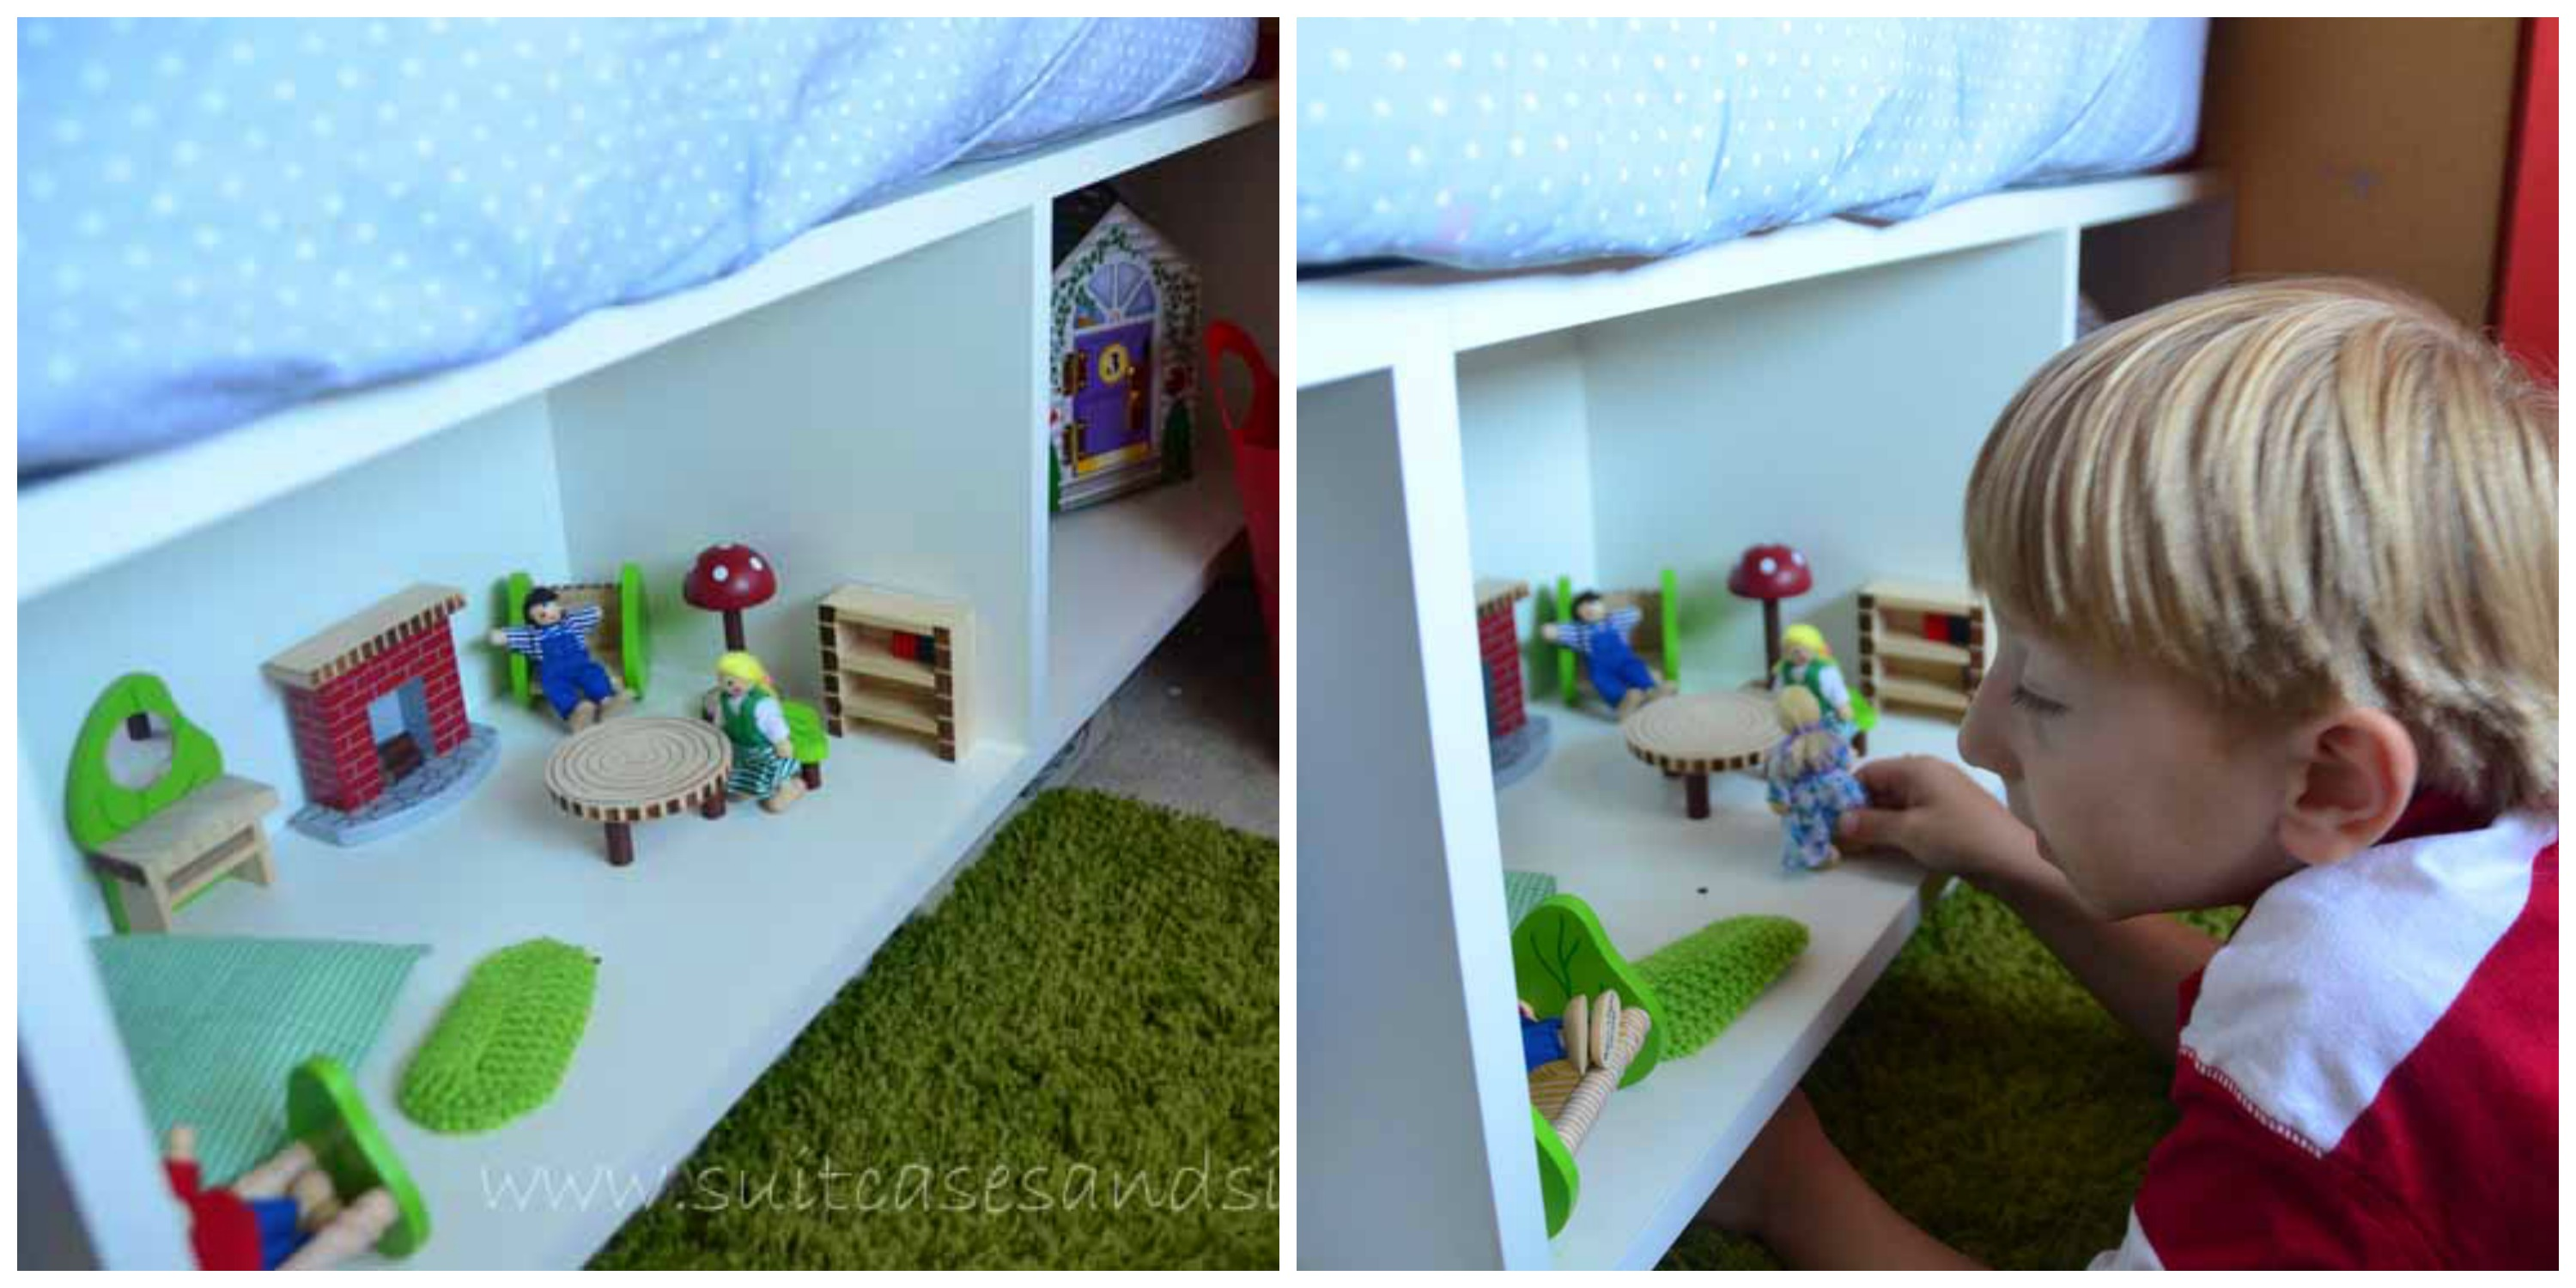 Convert Closet To Bedroom big family, small space} how to turn a closet into a kid's bedroom